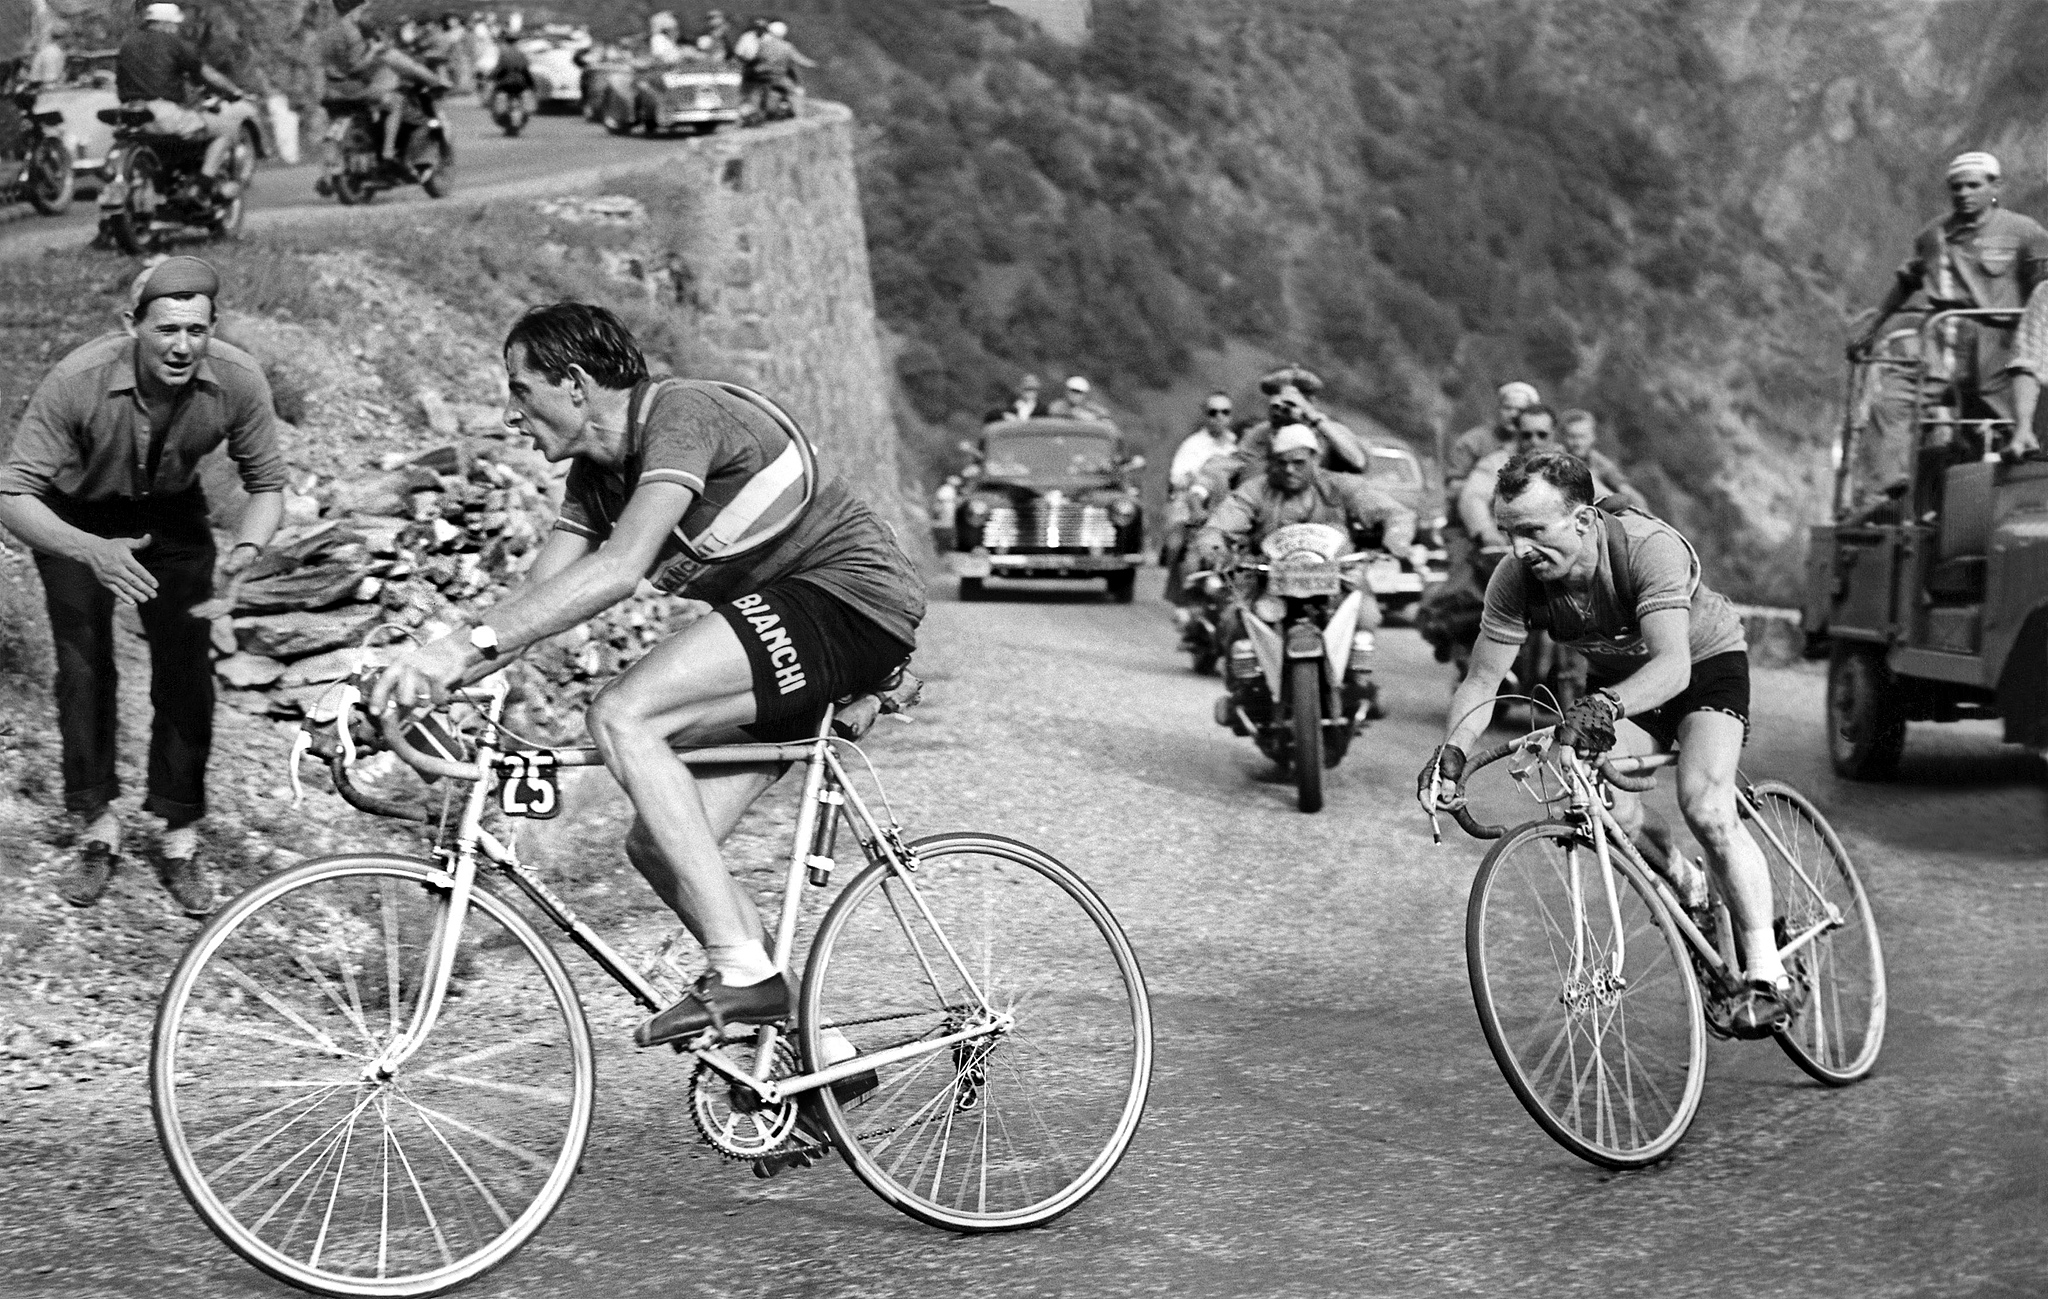 Fausto Coppi and Jean Robic - Tour de France: The Mountain